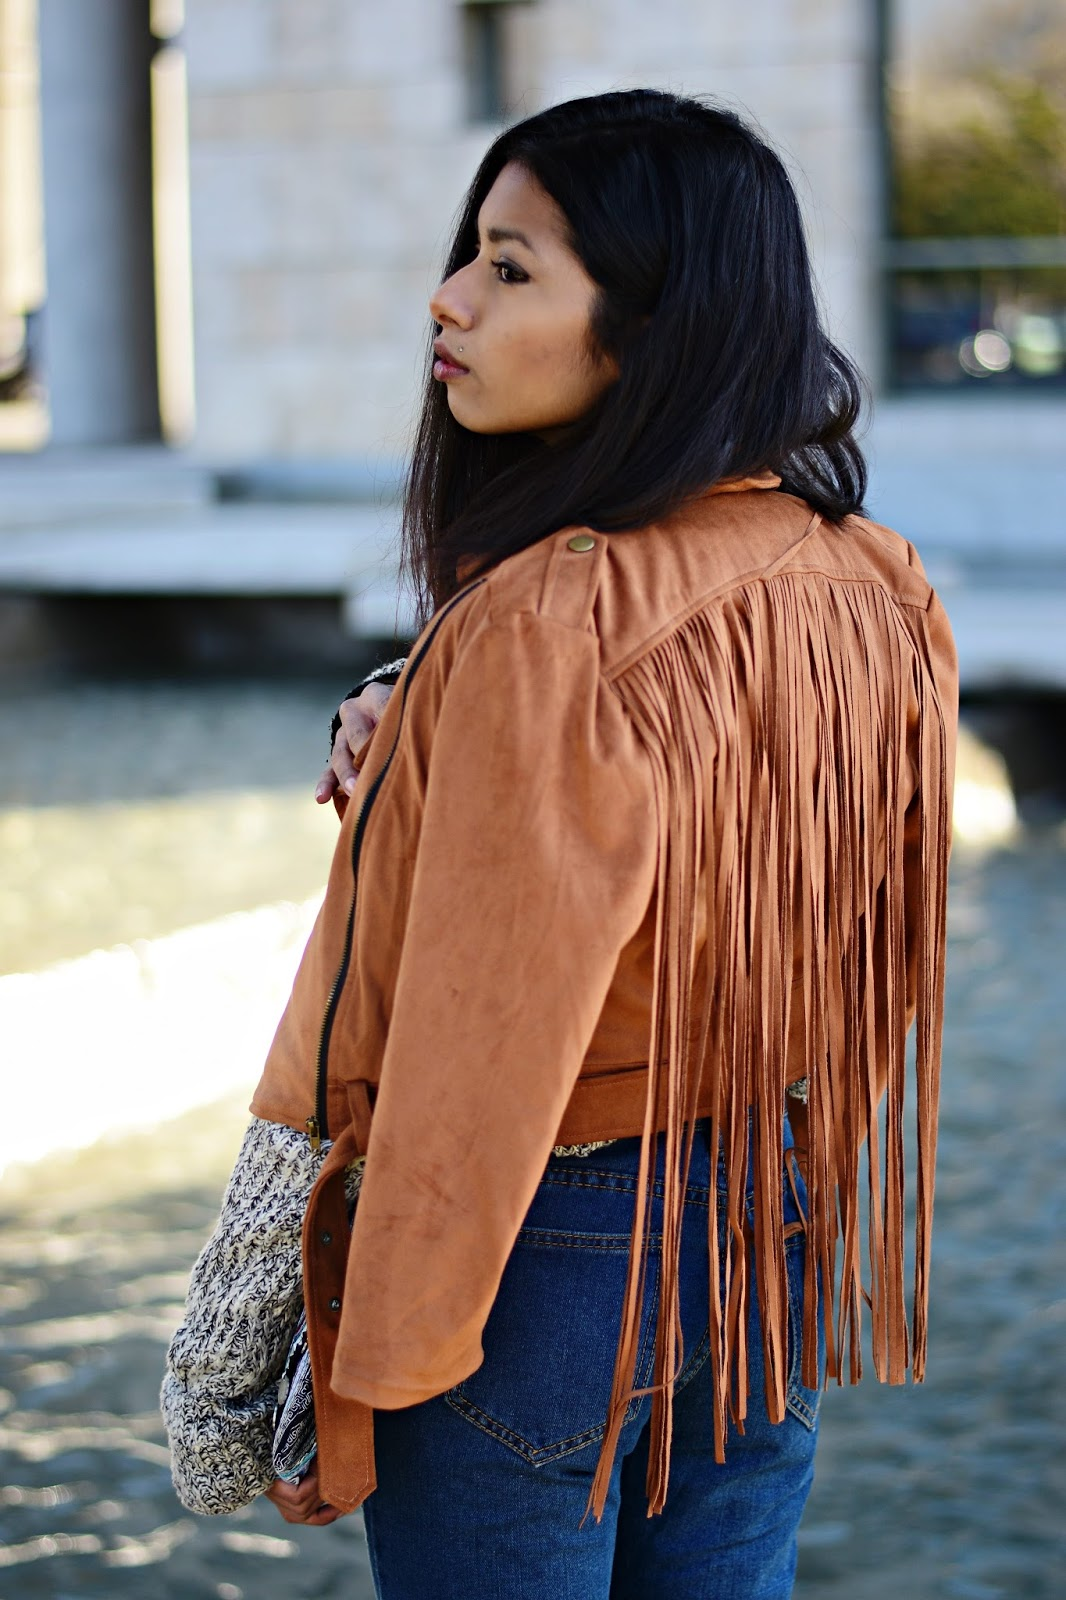 Style Boho chic in winter